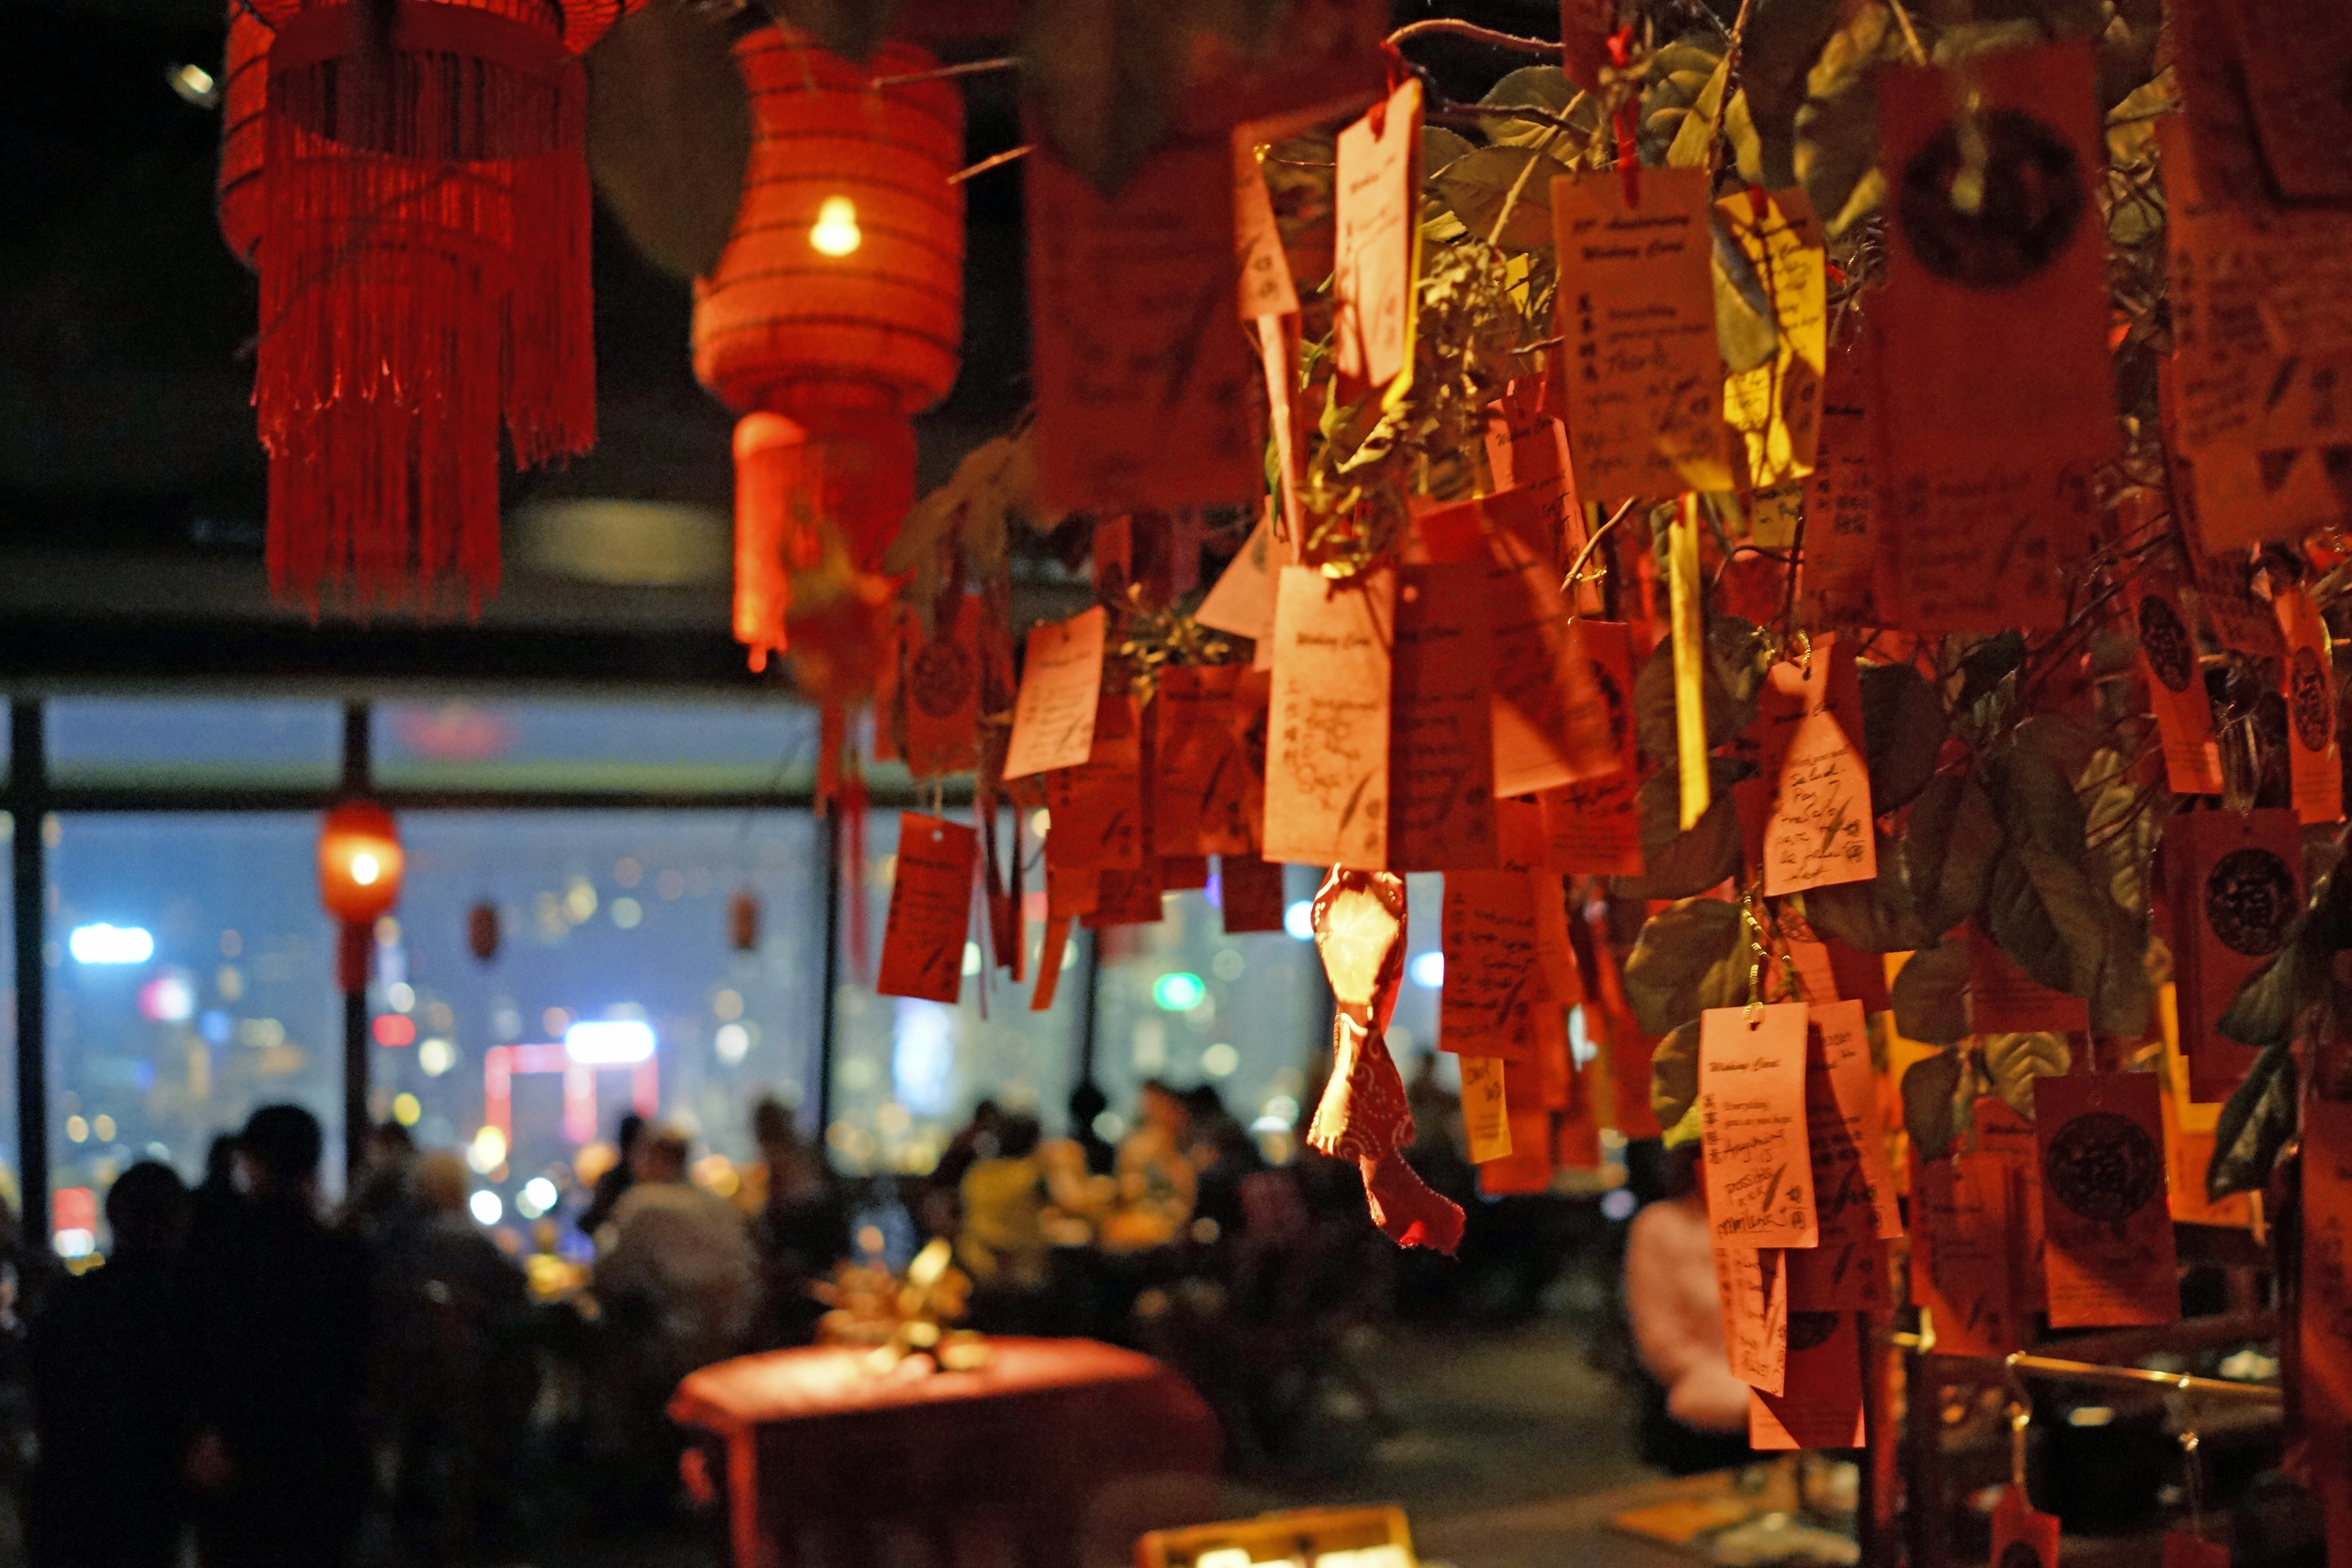 The Hu Tong restaurant is one of our finer establishments and it absolutely has a lot of wow factor going for it at night time. Amazing.